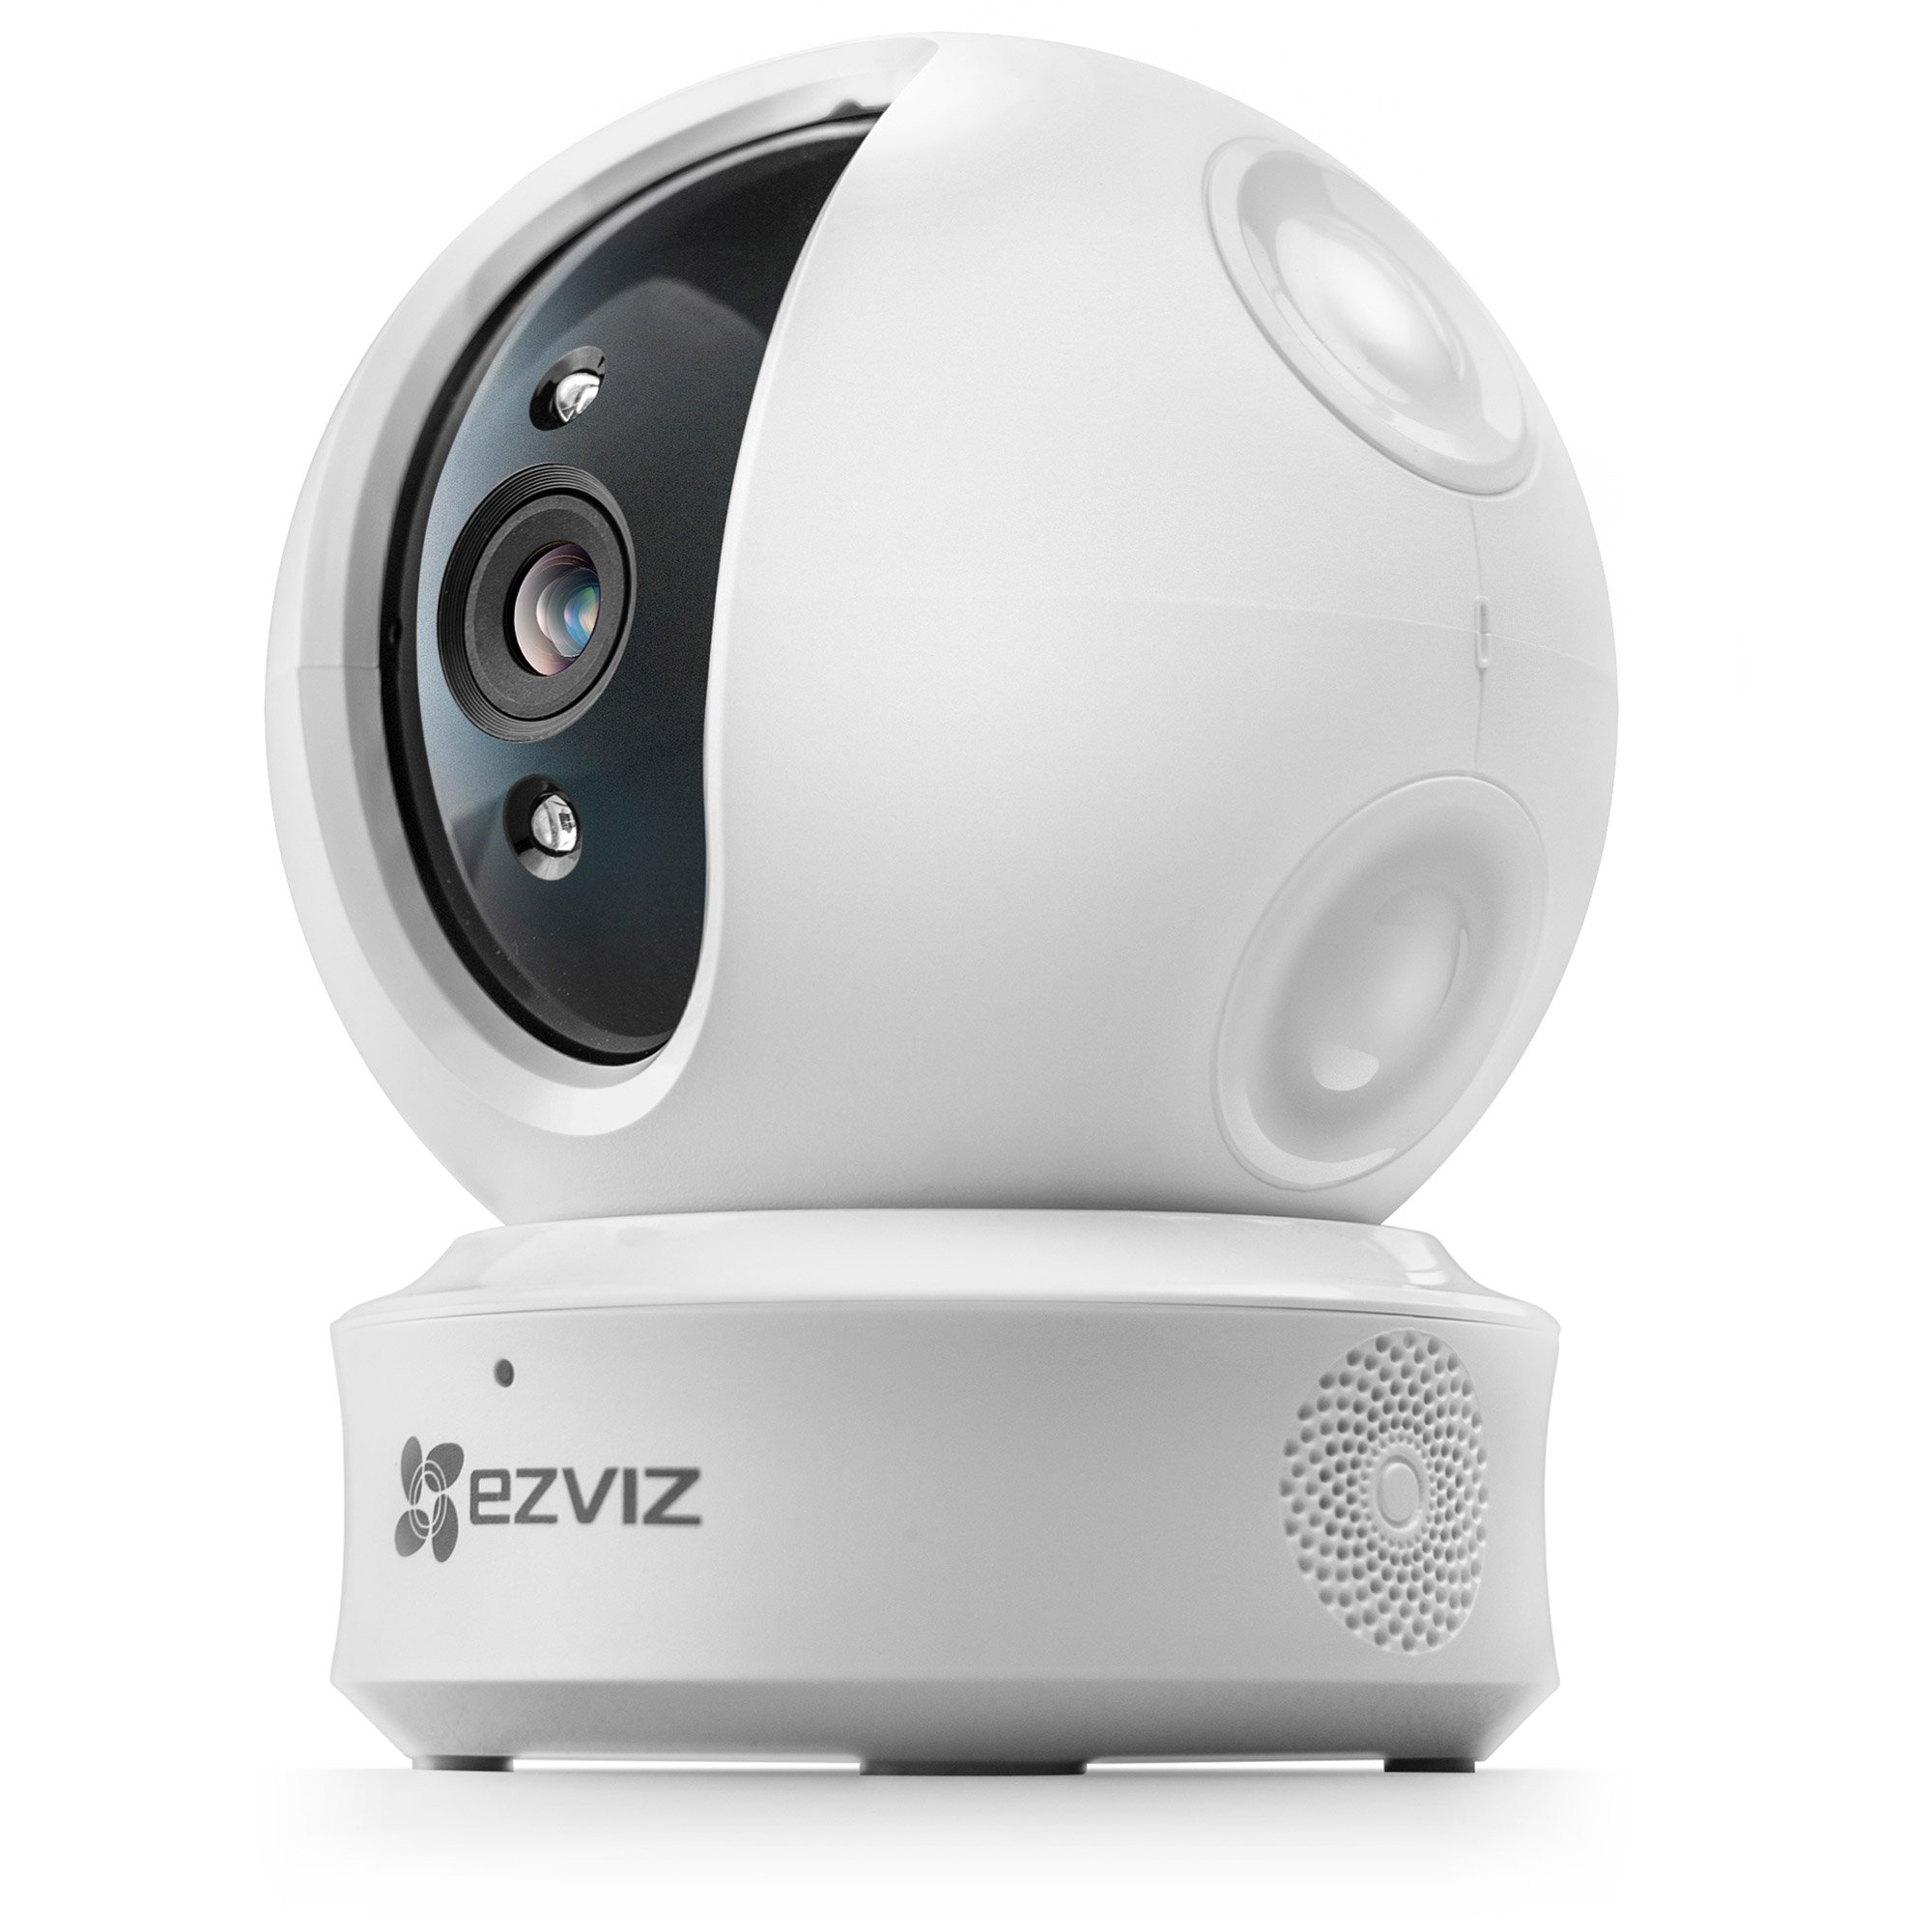 EZVIZ EZ360 1080P HD Pan/Tilt/Zoom WiFi Home Security Camera-Auto Motion Tracking, Night Vision, Two-Way Audio (White) (Camera Only)